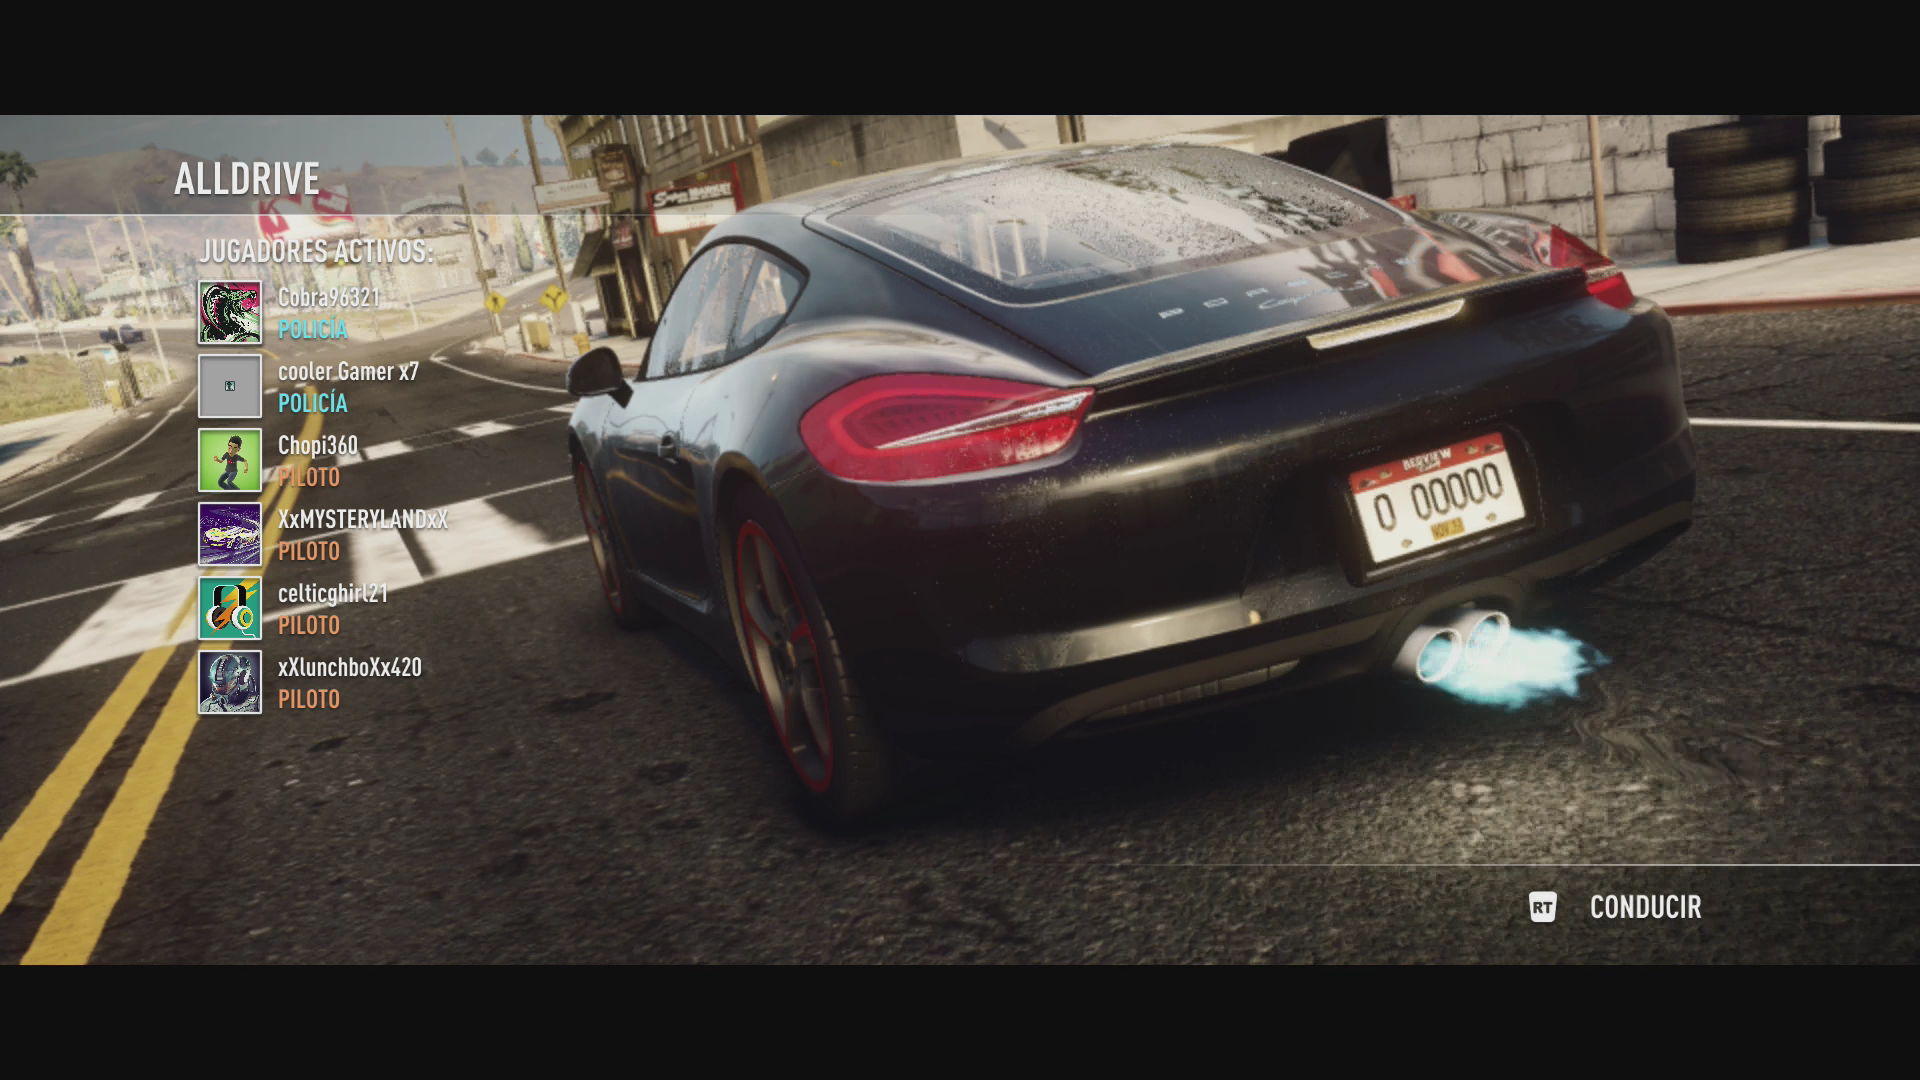 NFS Rivals Screen Shot 22:12:13 13. 26